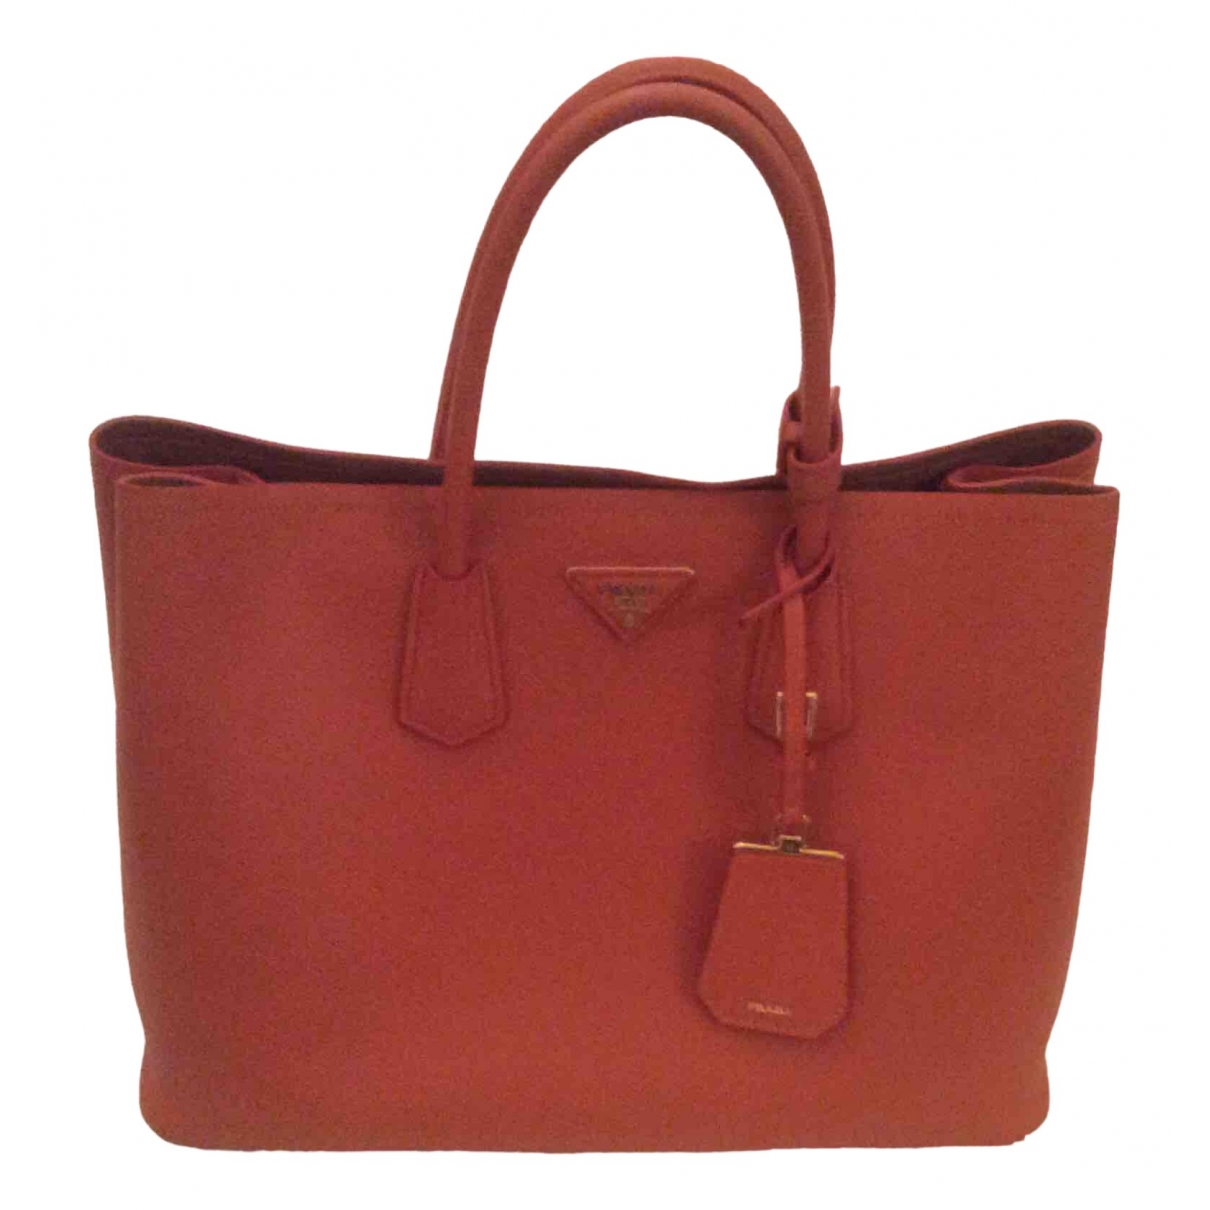 Prada \N Handtasche in  Orange Leder